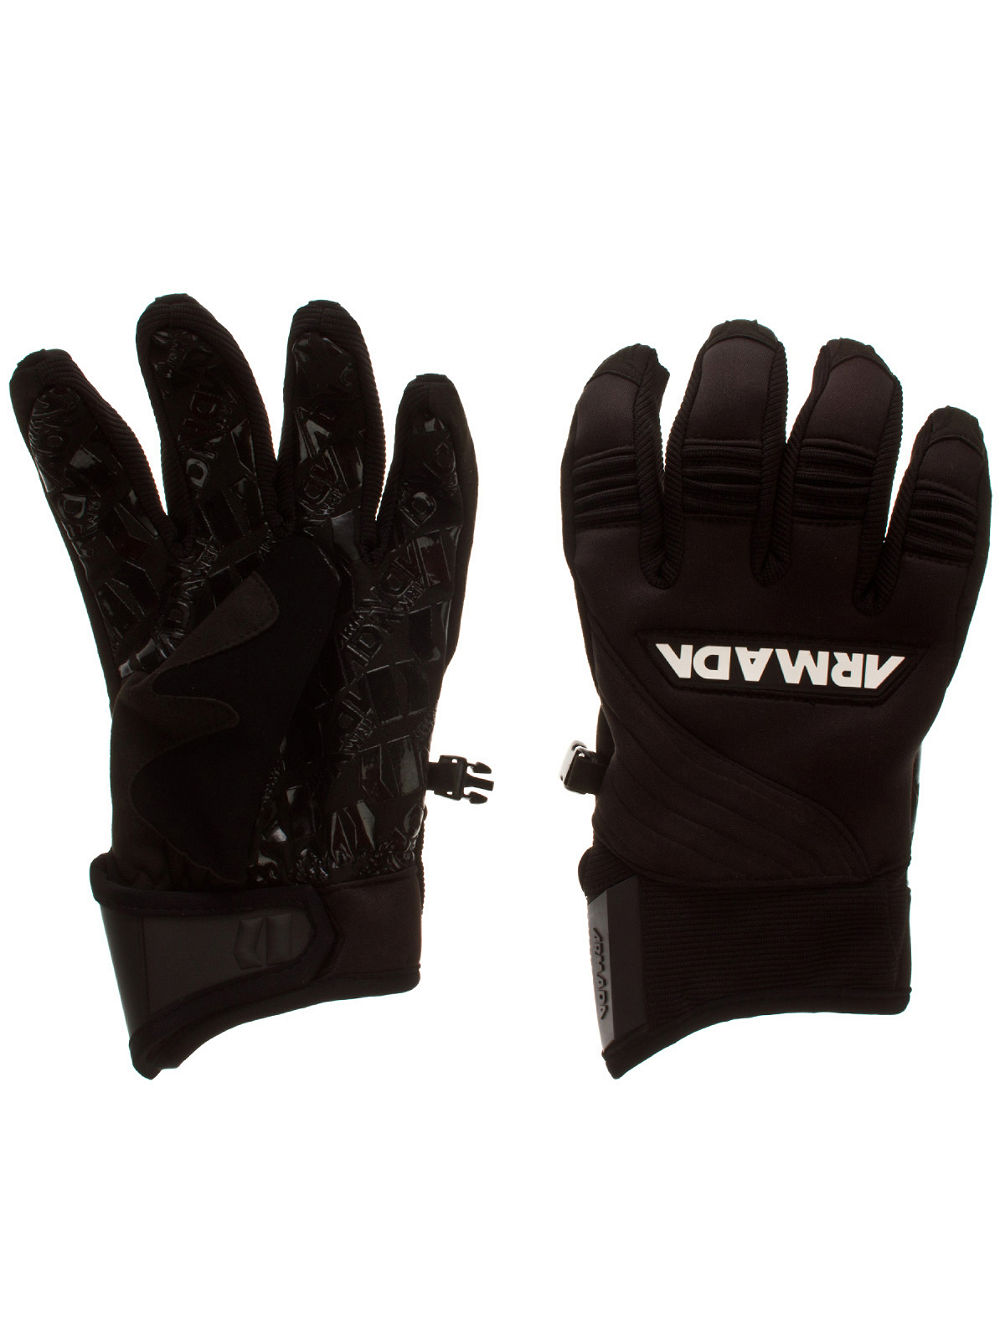 Throttle Pipe Glove